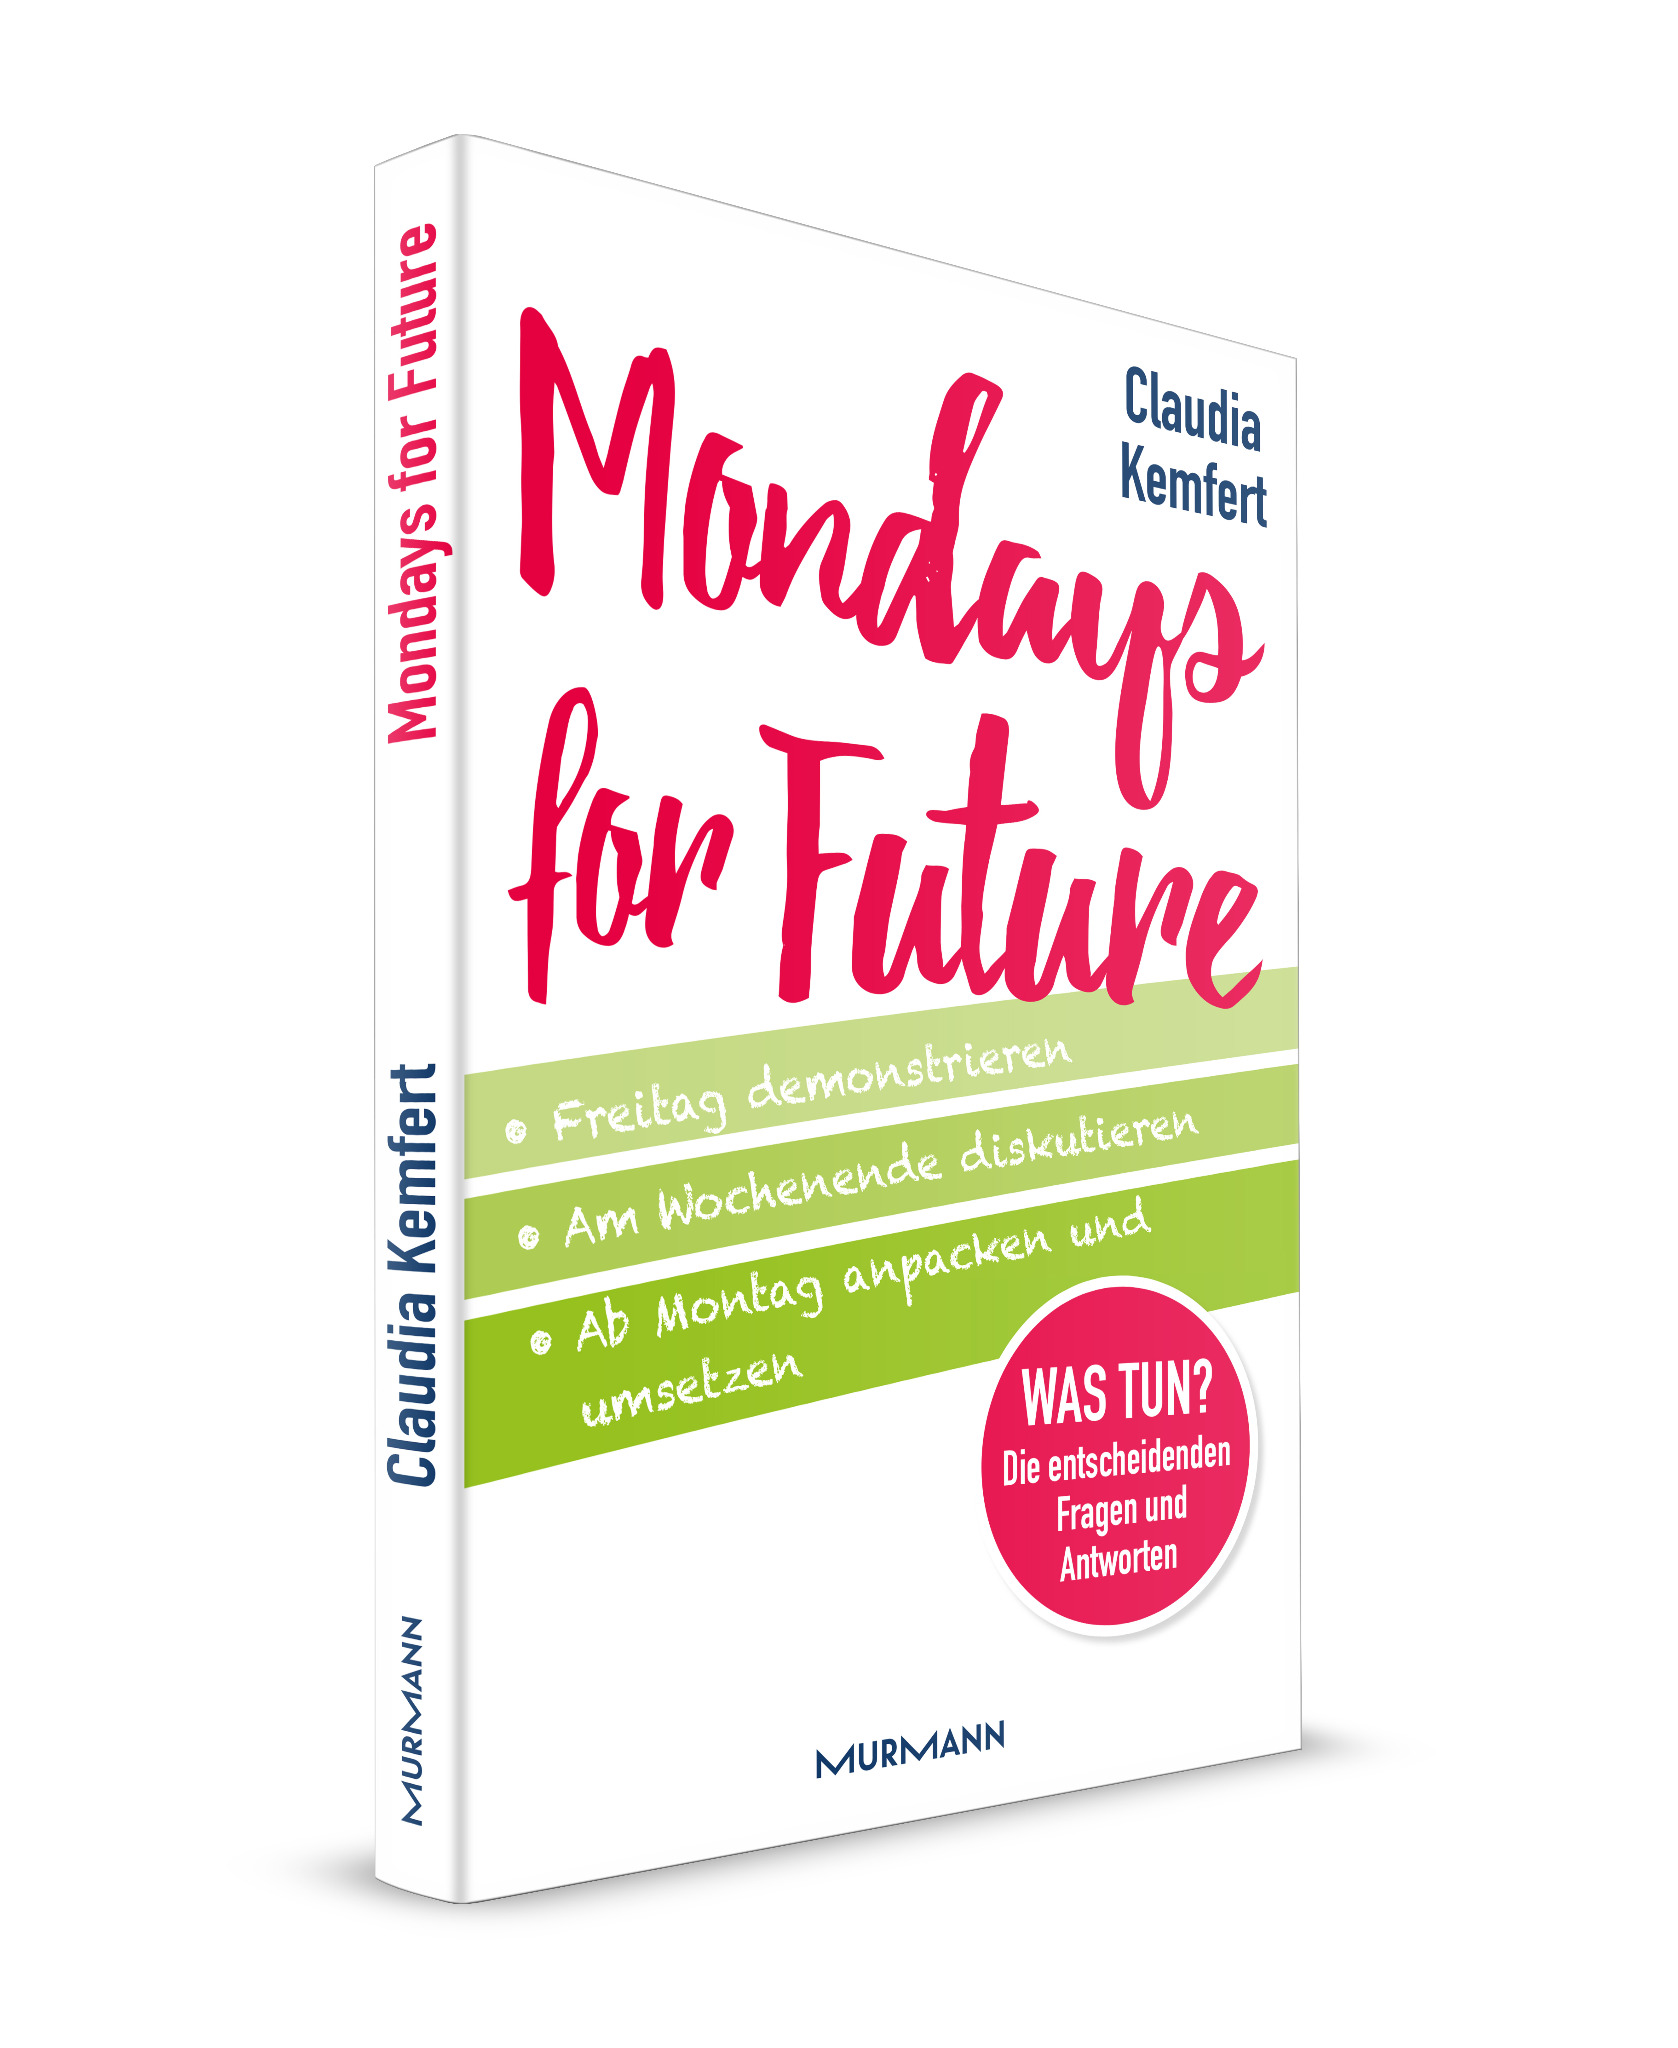 Mondays for Future / Claudia Kemfert